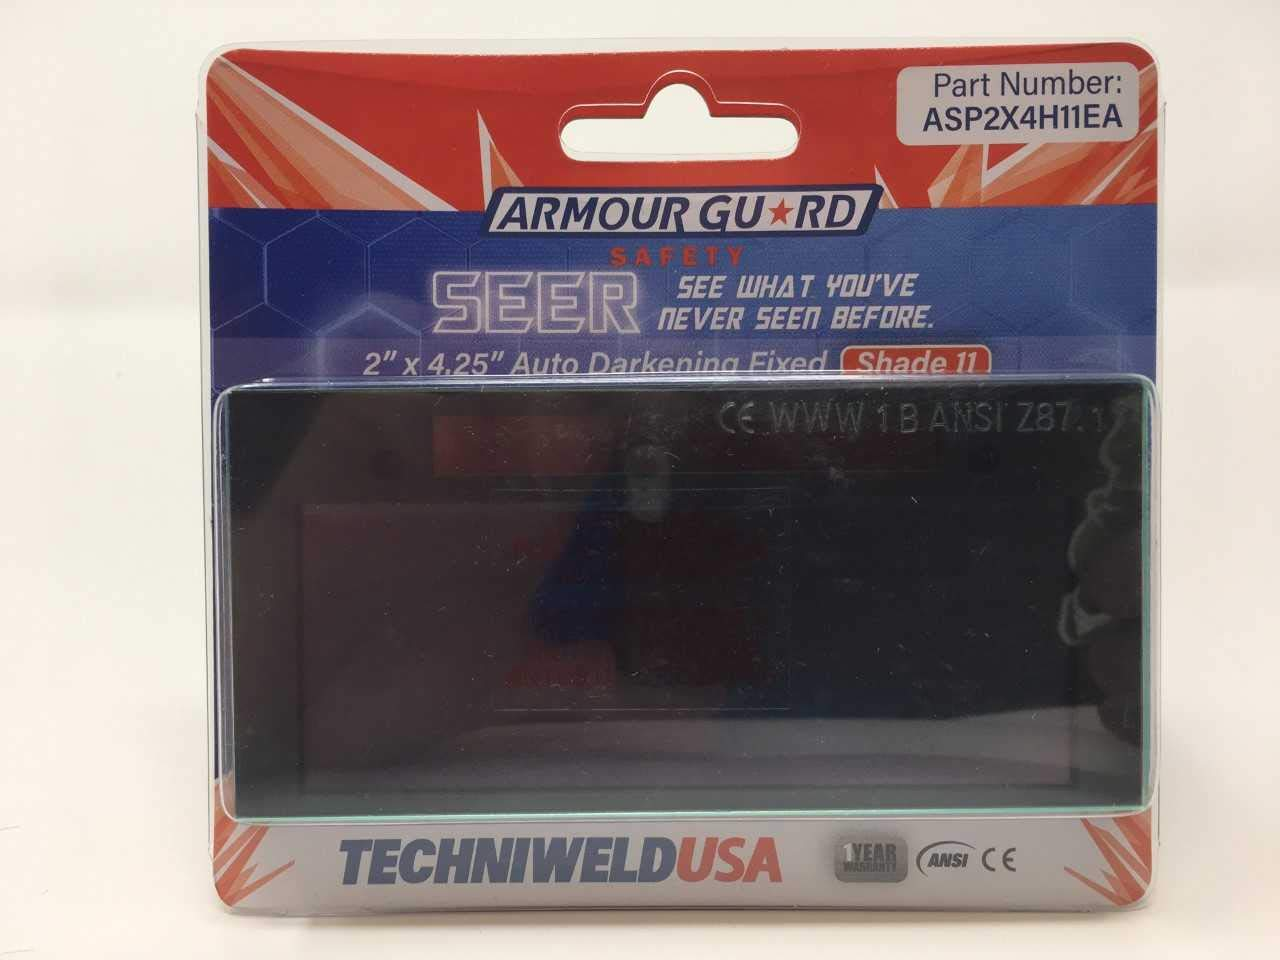 Techniweld ASP2X4H11EA Seer Solar Auto Welding Lens 2 X 4.25'' Shades 9, 10, 11, or 12 Shade 3 Off (Shade 11) by Techniweld